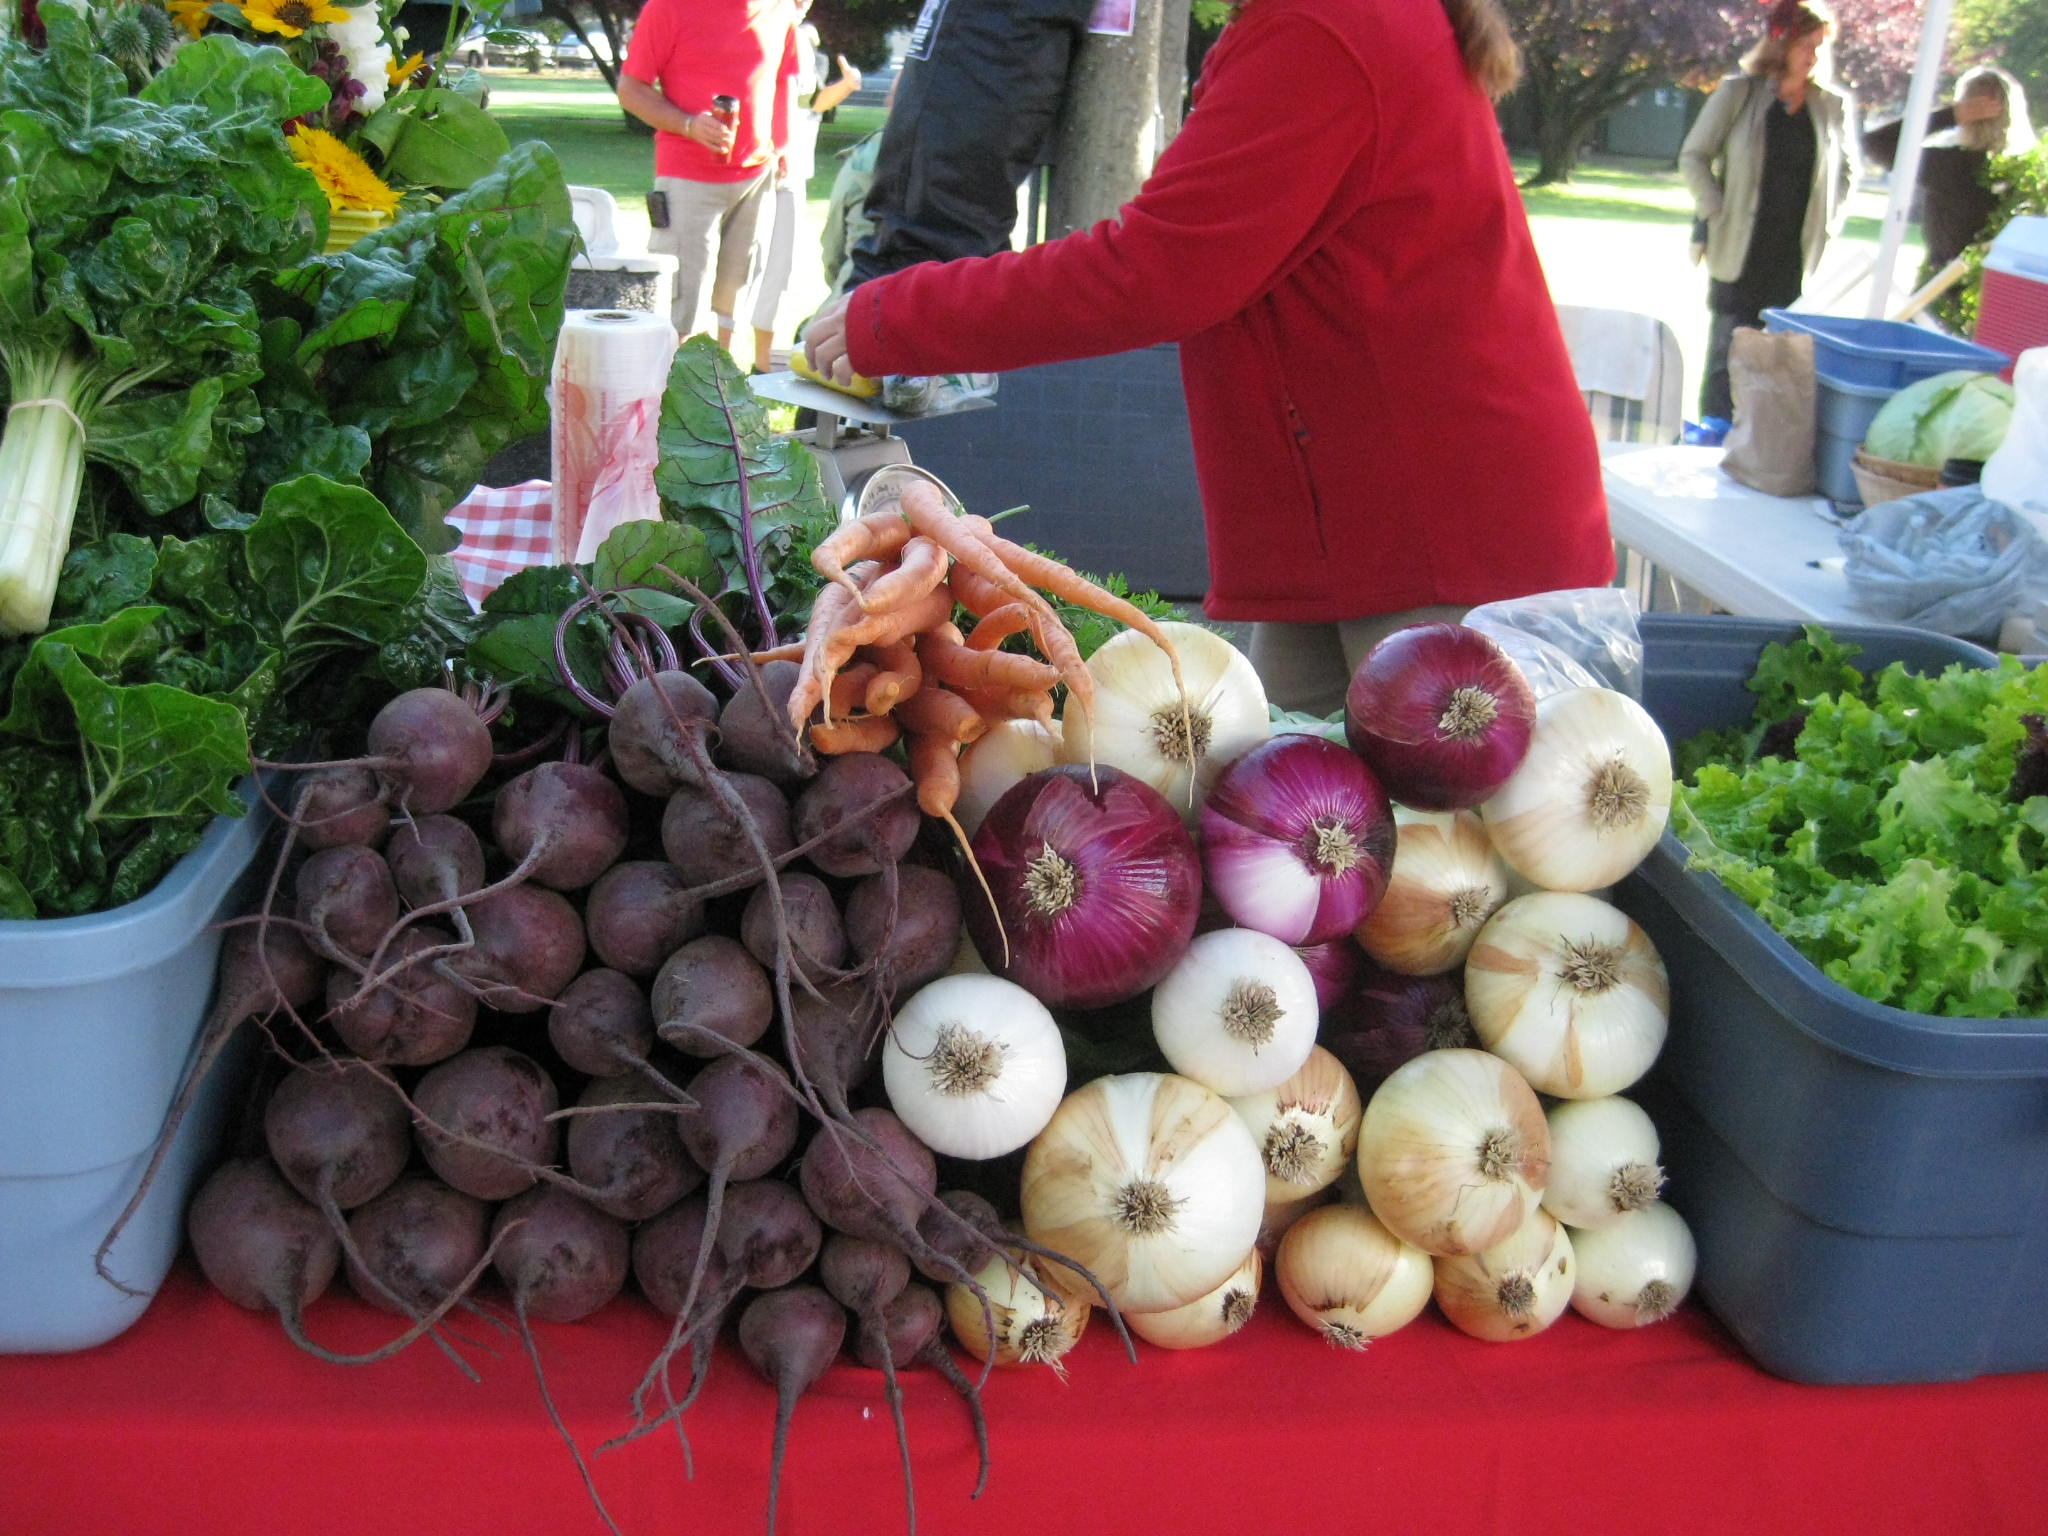 Image of Farmers Market Produce